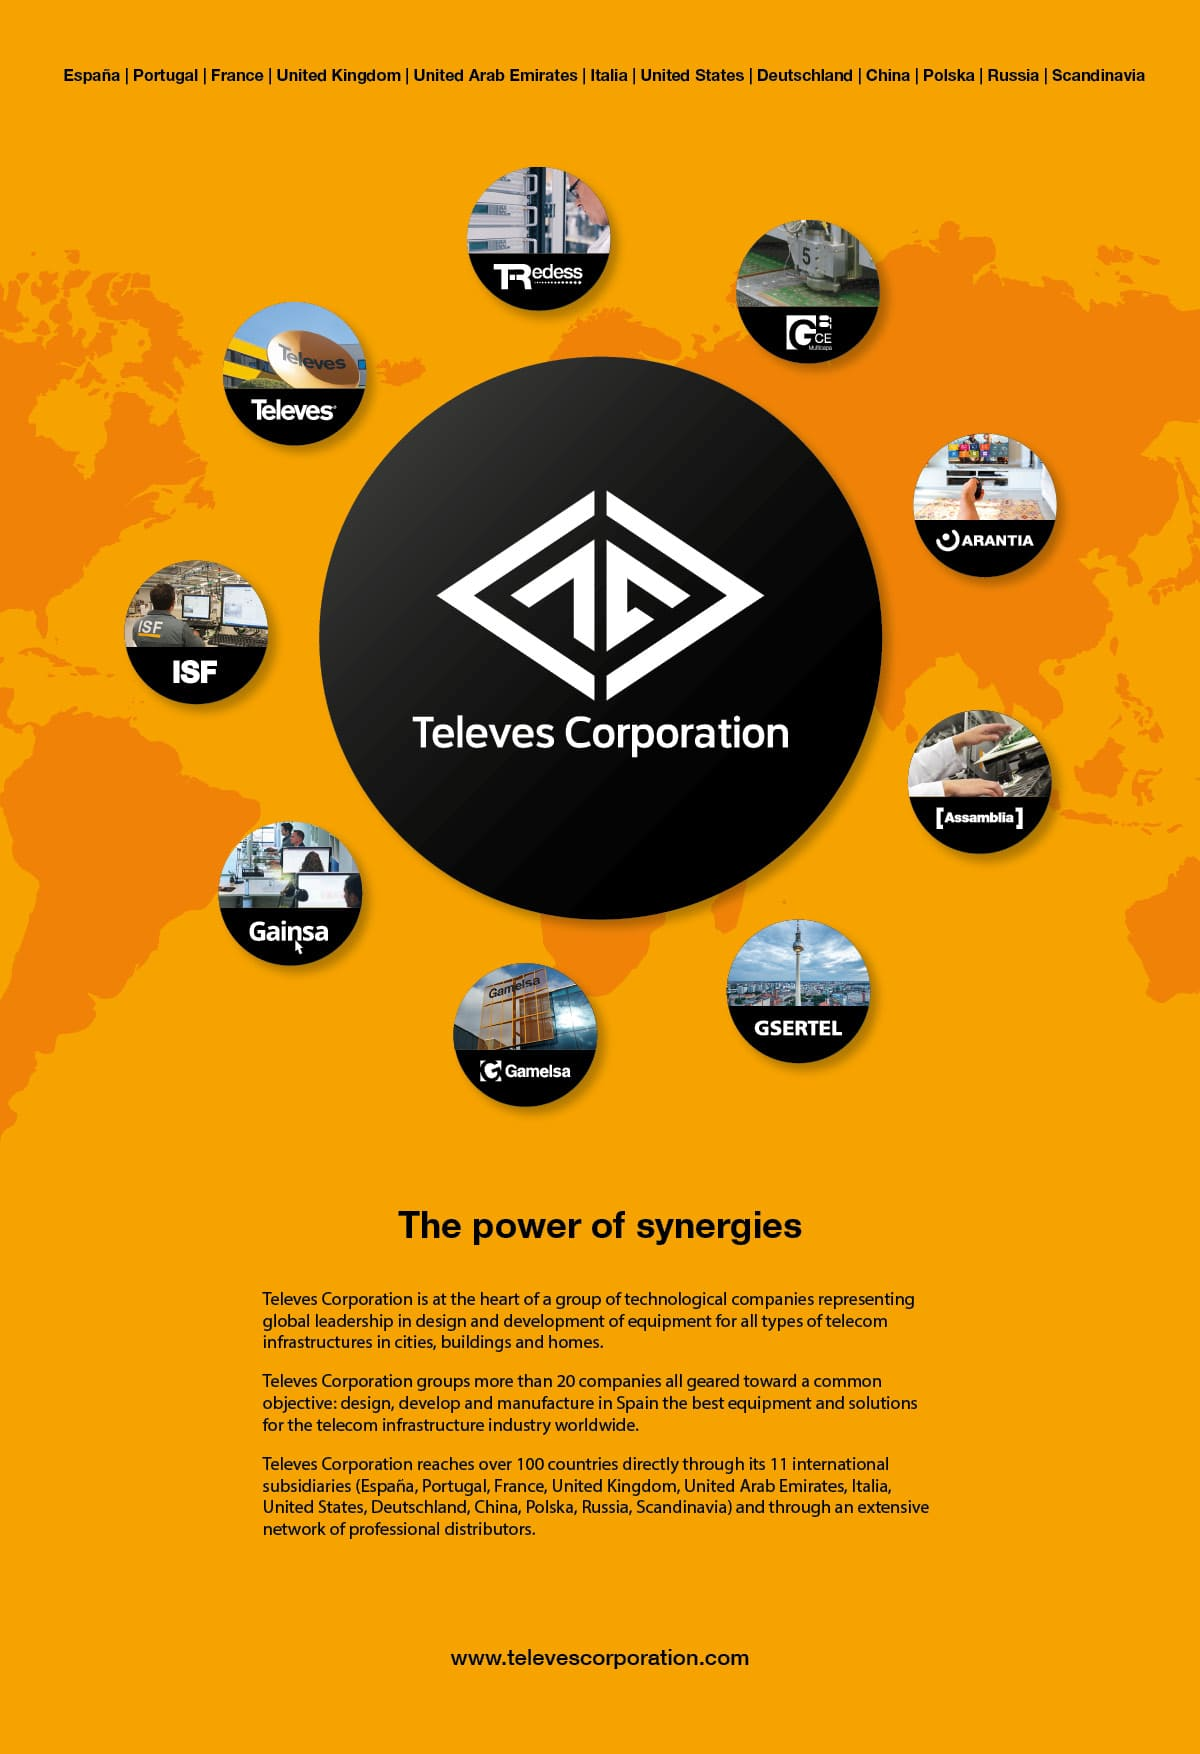 Televes Corporation, the power of synergies